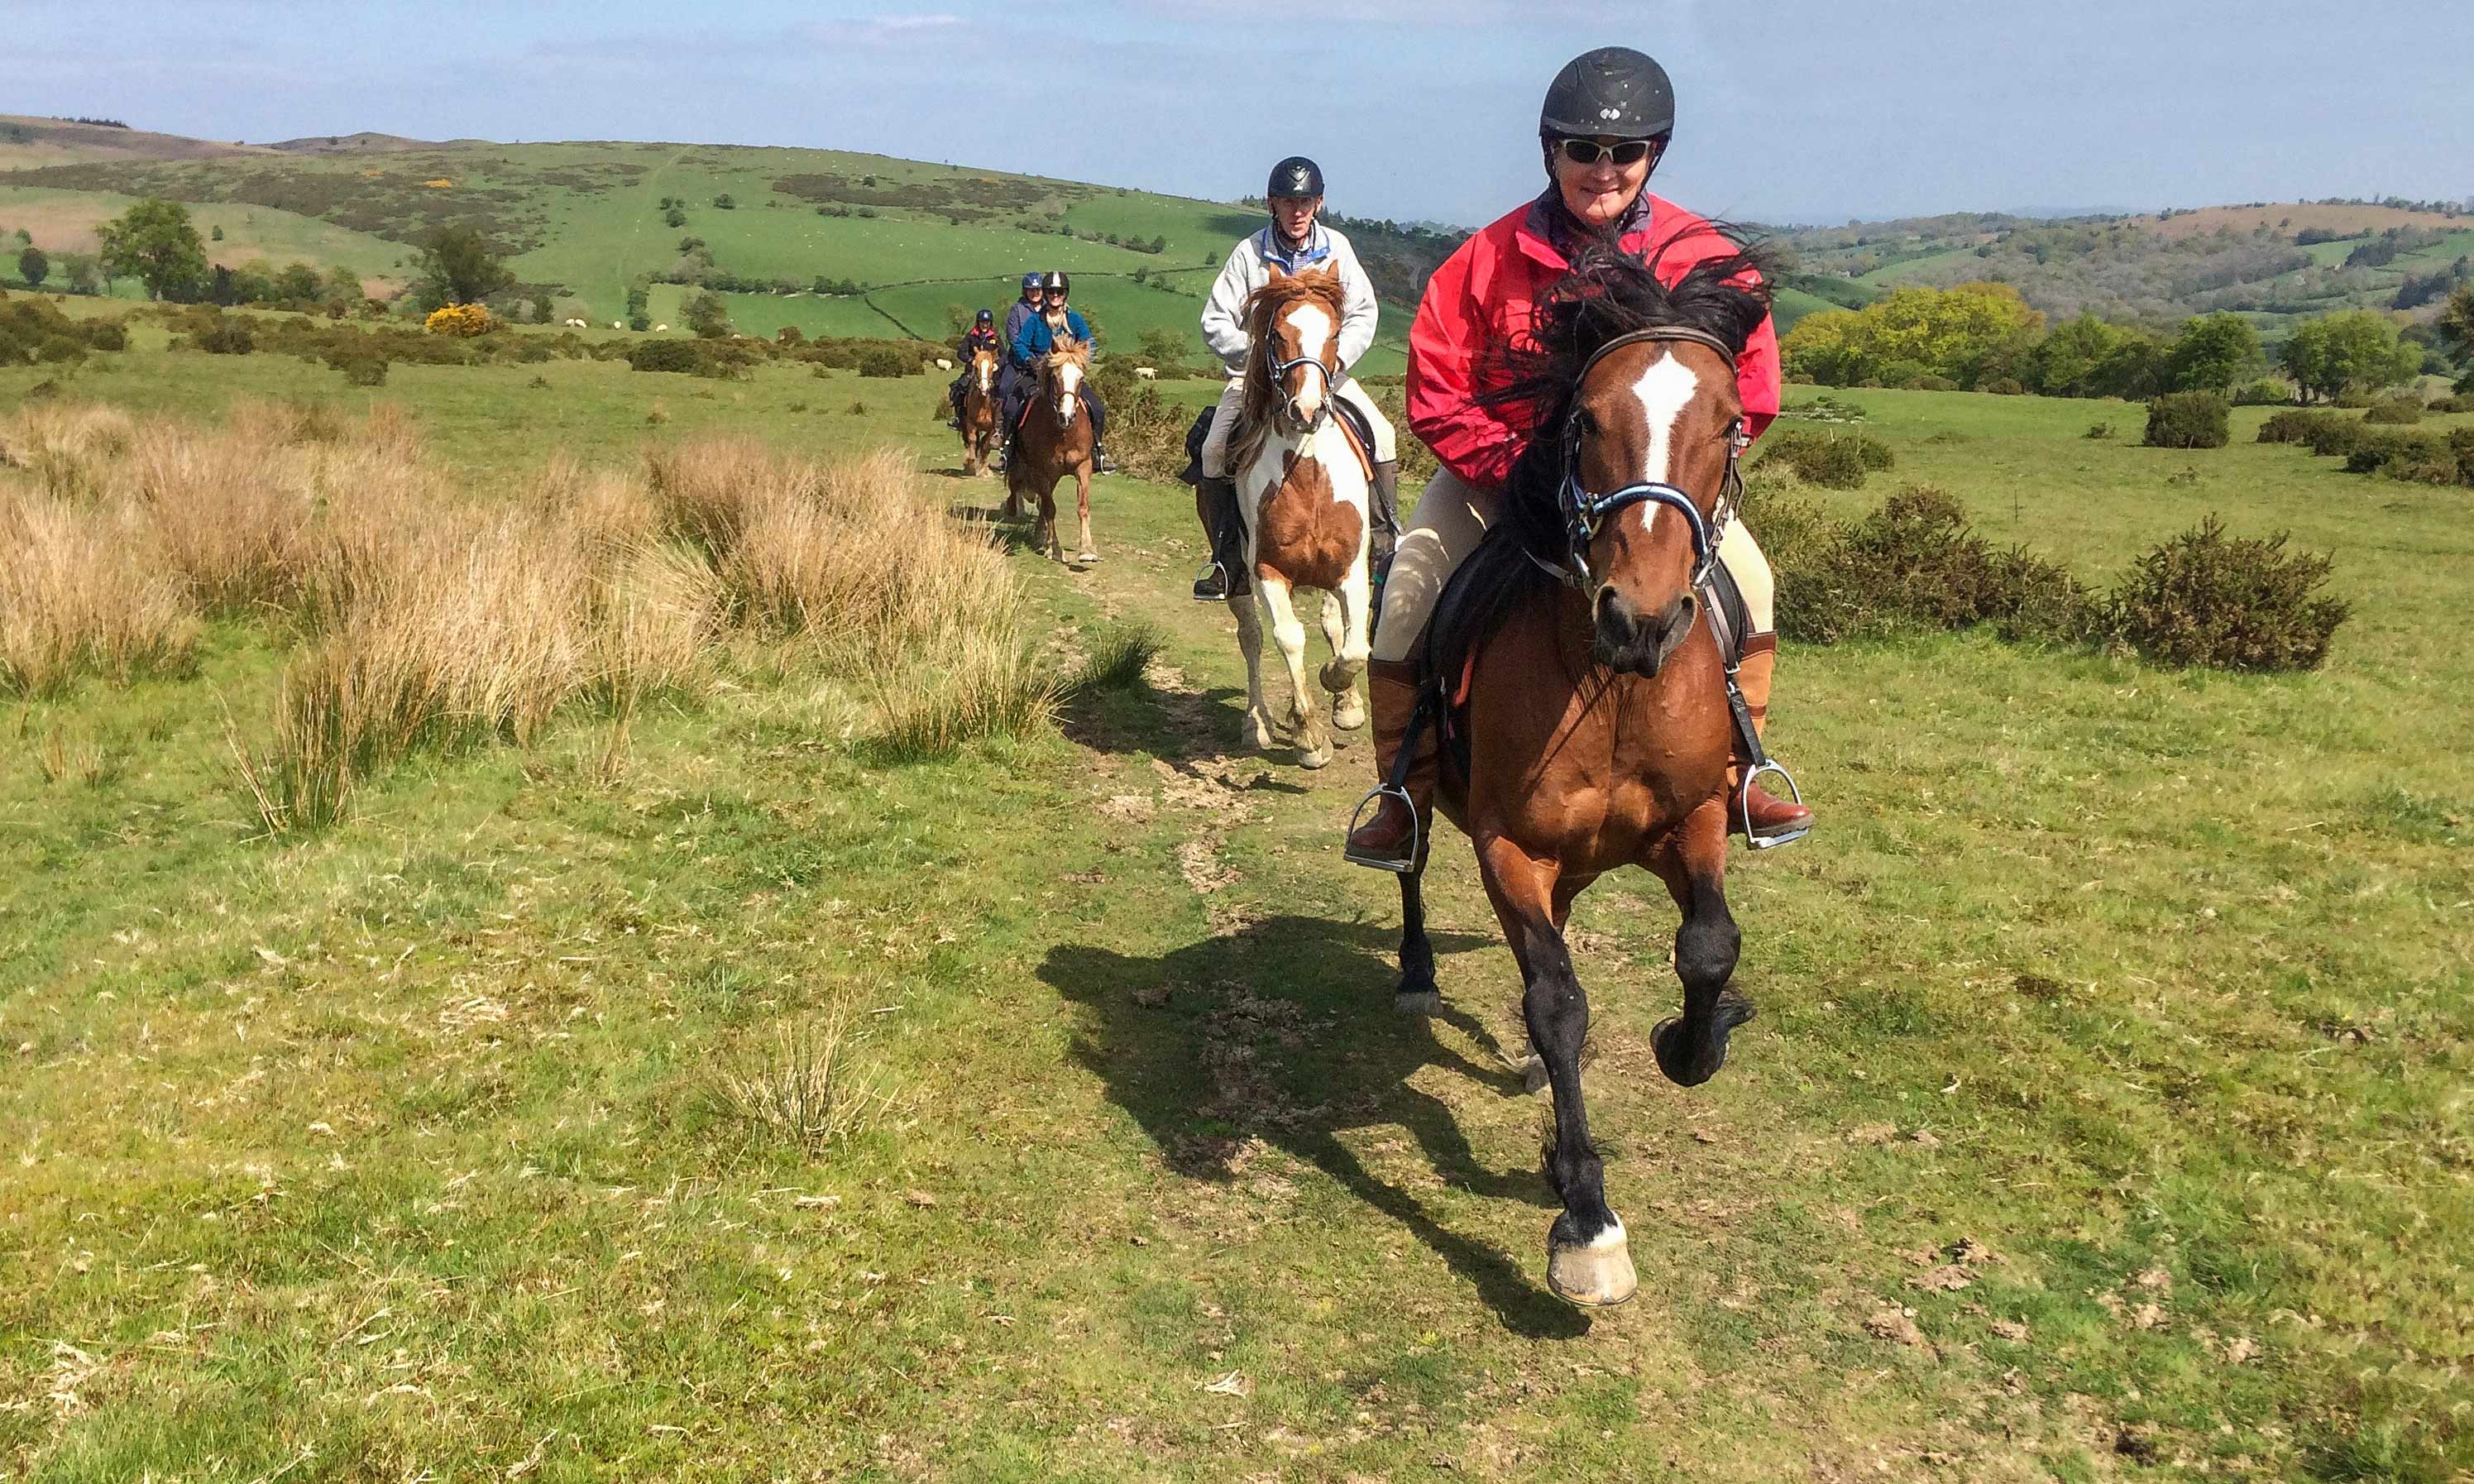 Freerein Molly and friends enjoying a canter on the way back to Freerein HQ